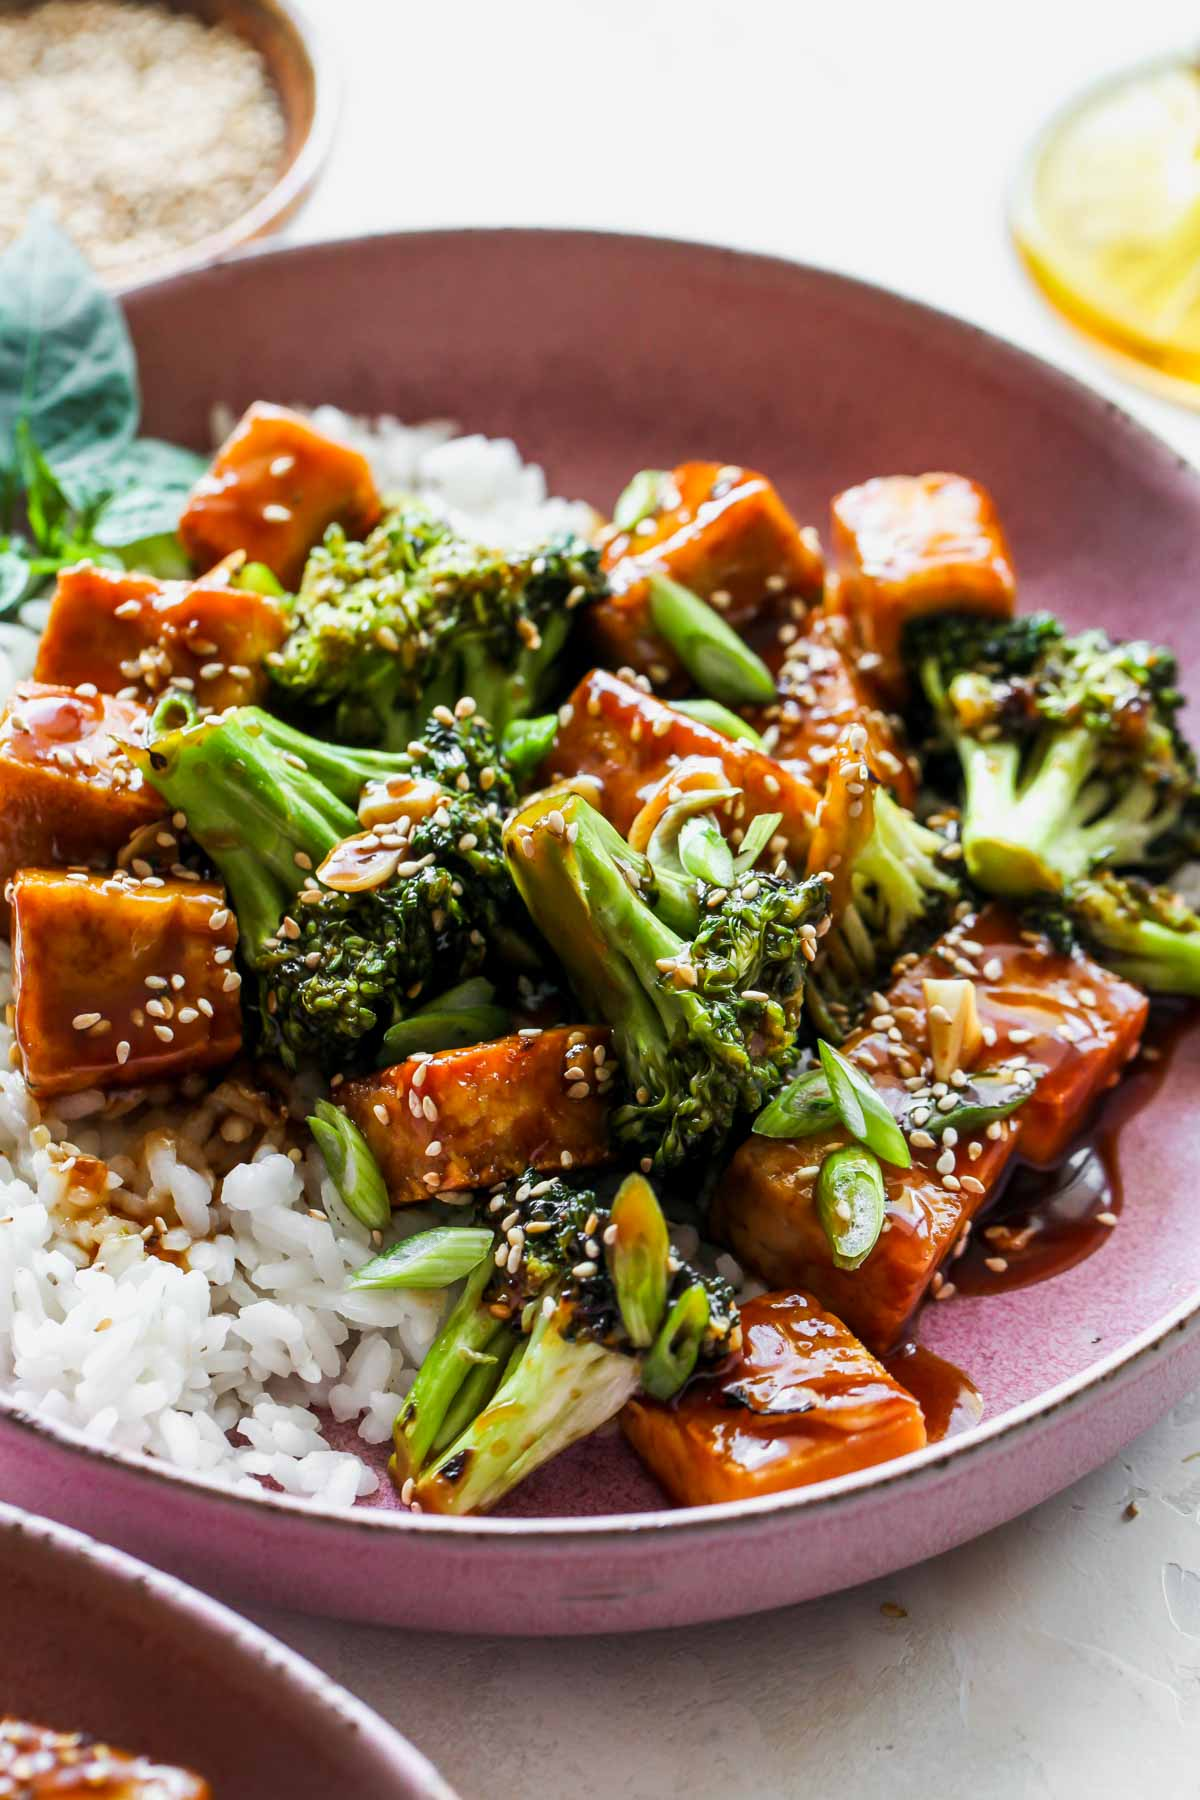 Tofu tossed in homemade teriyaki sauce and served over rice in a pink bowl